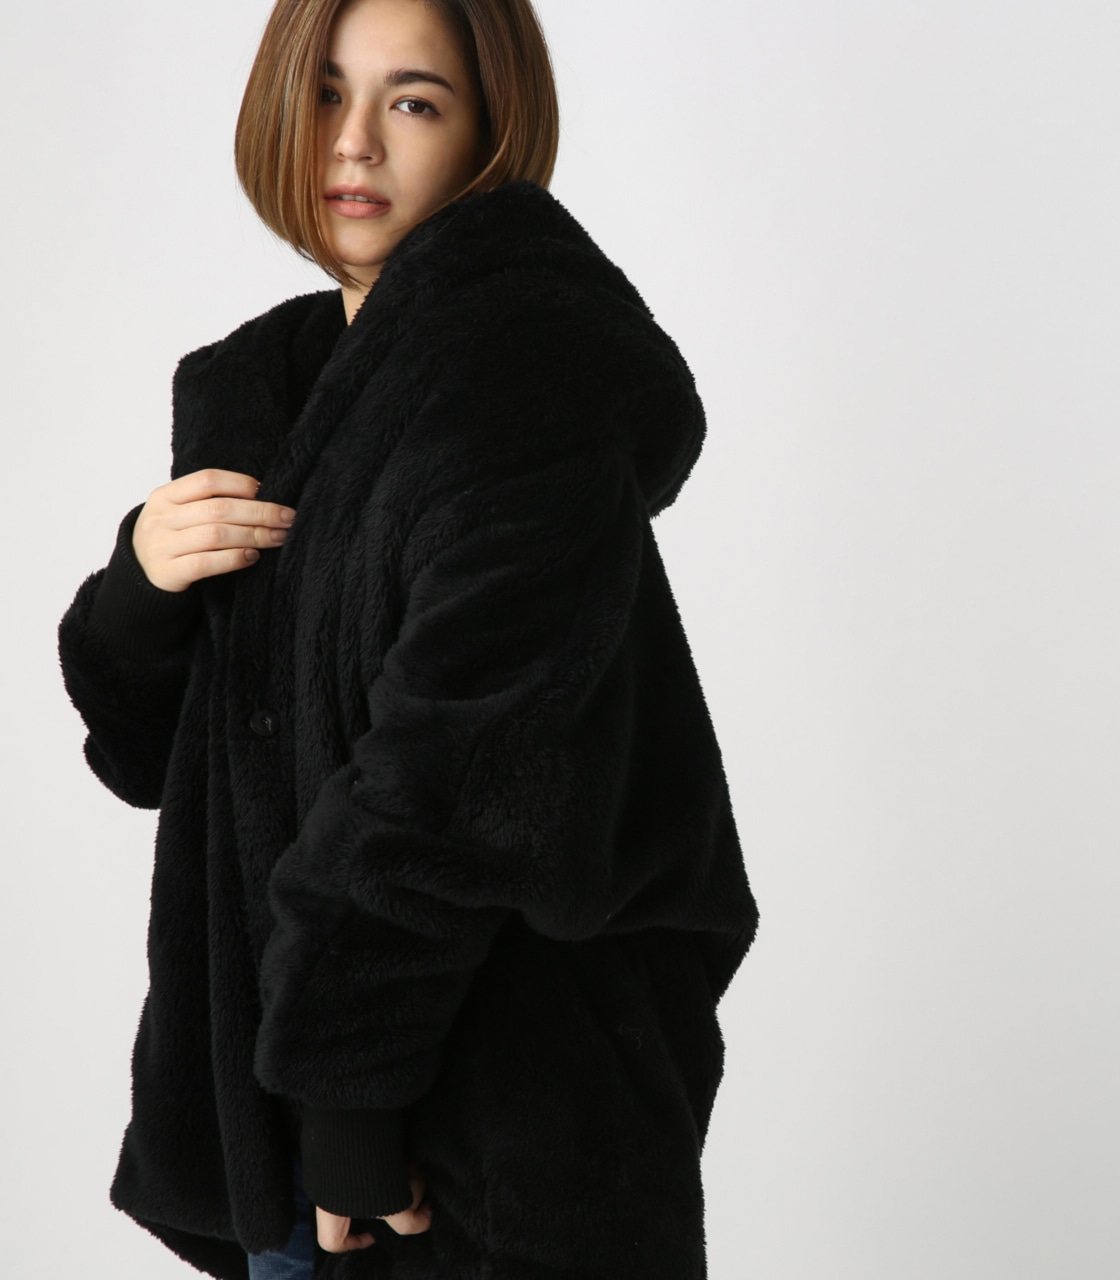 【AZUL BY MOUSSY】ボアショールカラーロングコート【MOOK44掲載 99031】 詳細画像 BLK 1